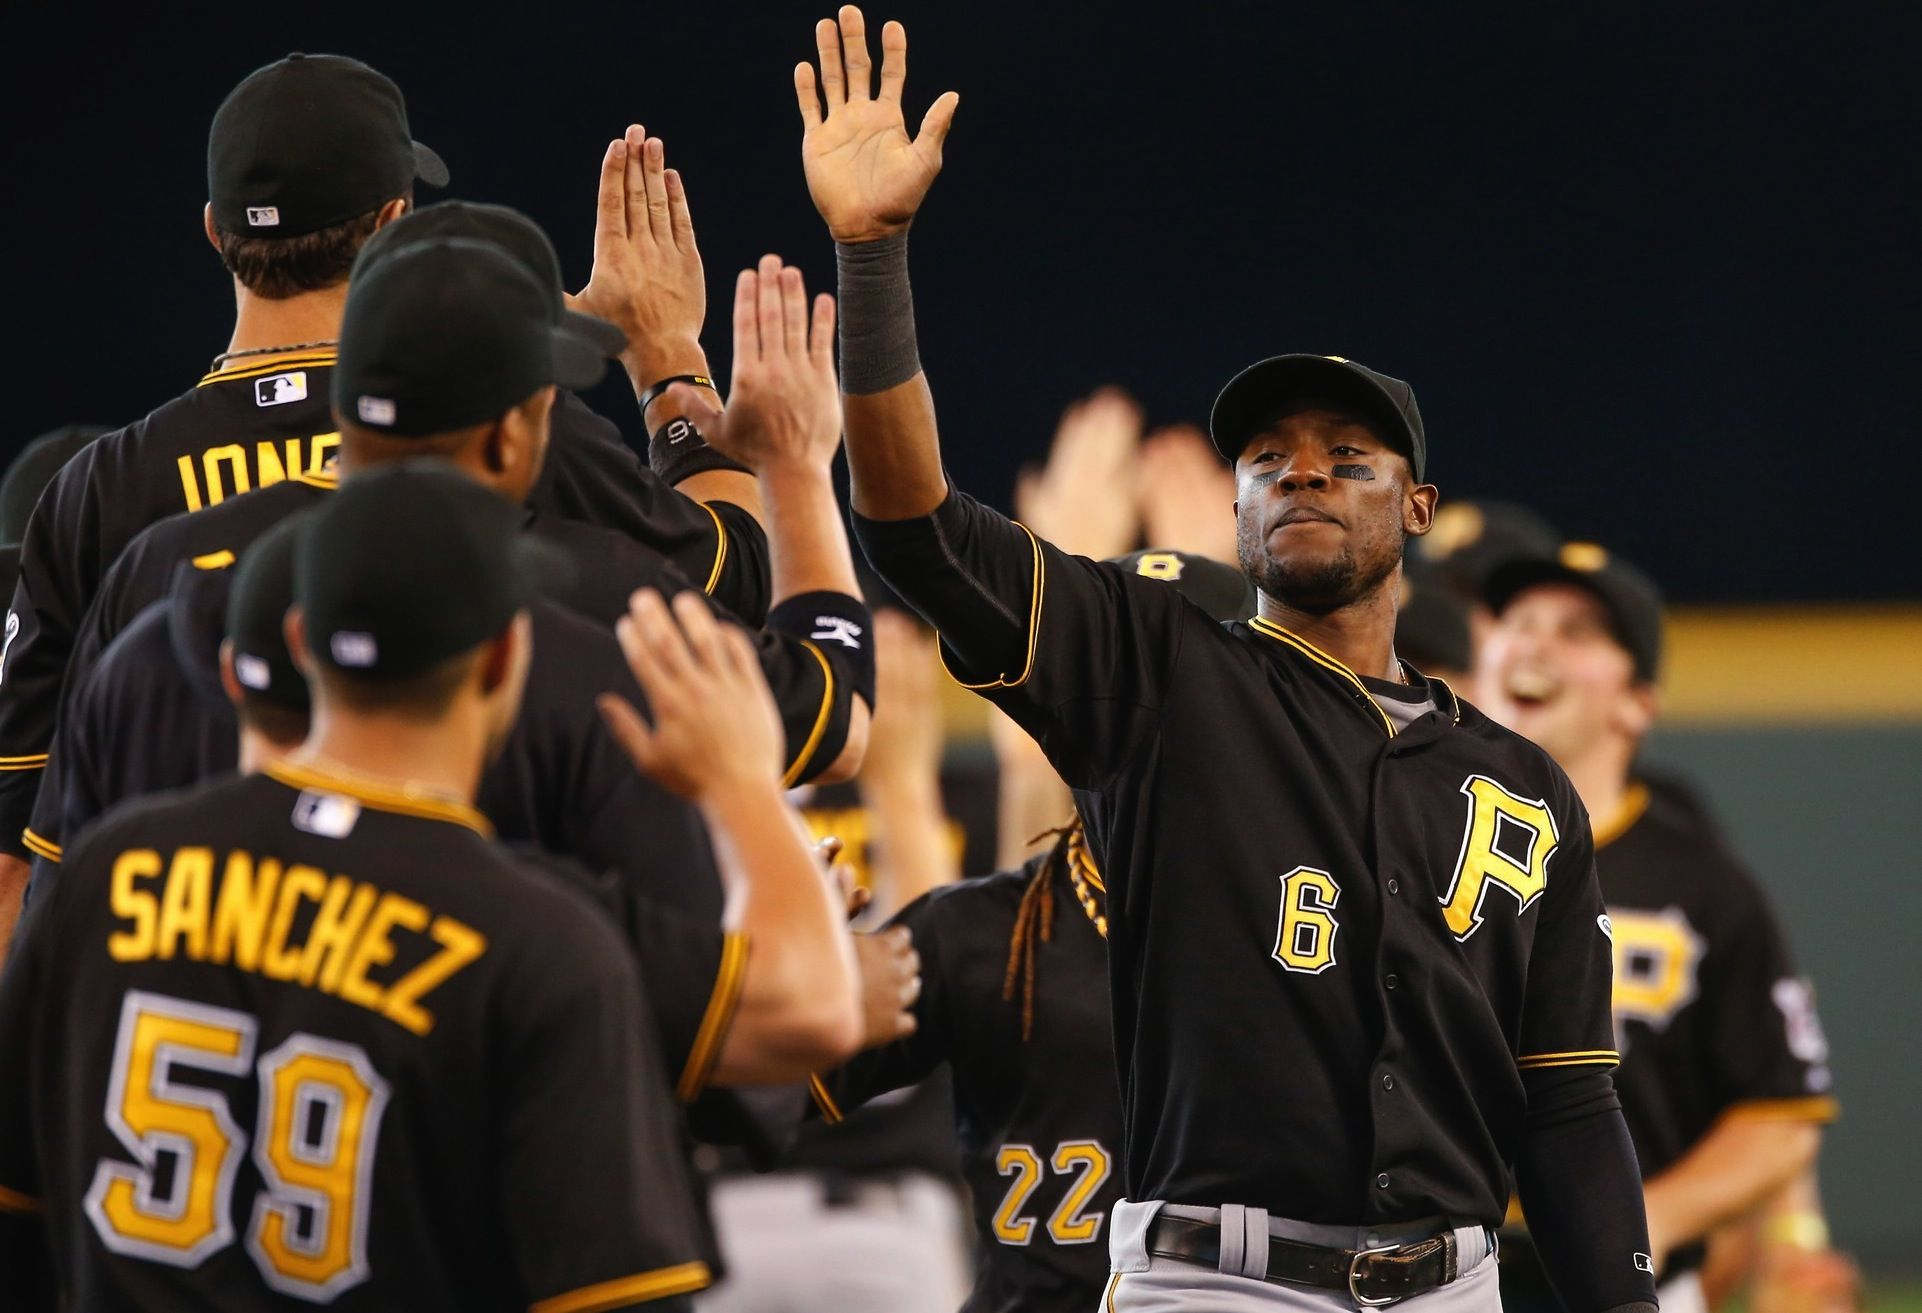 Pittsburgh Pirates Players